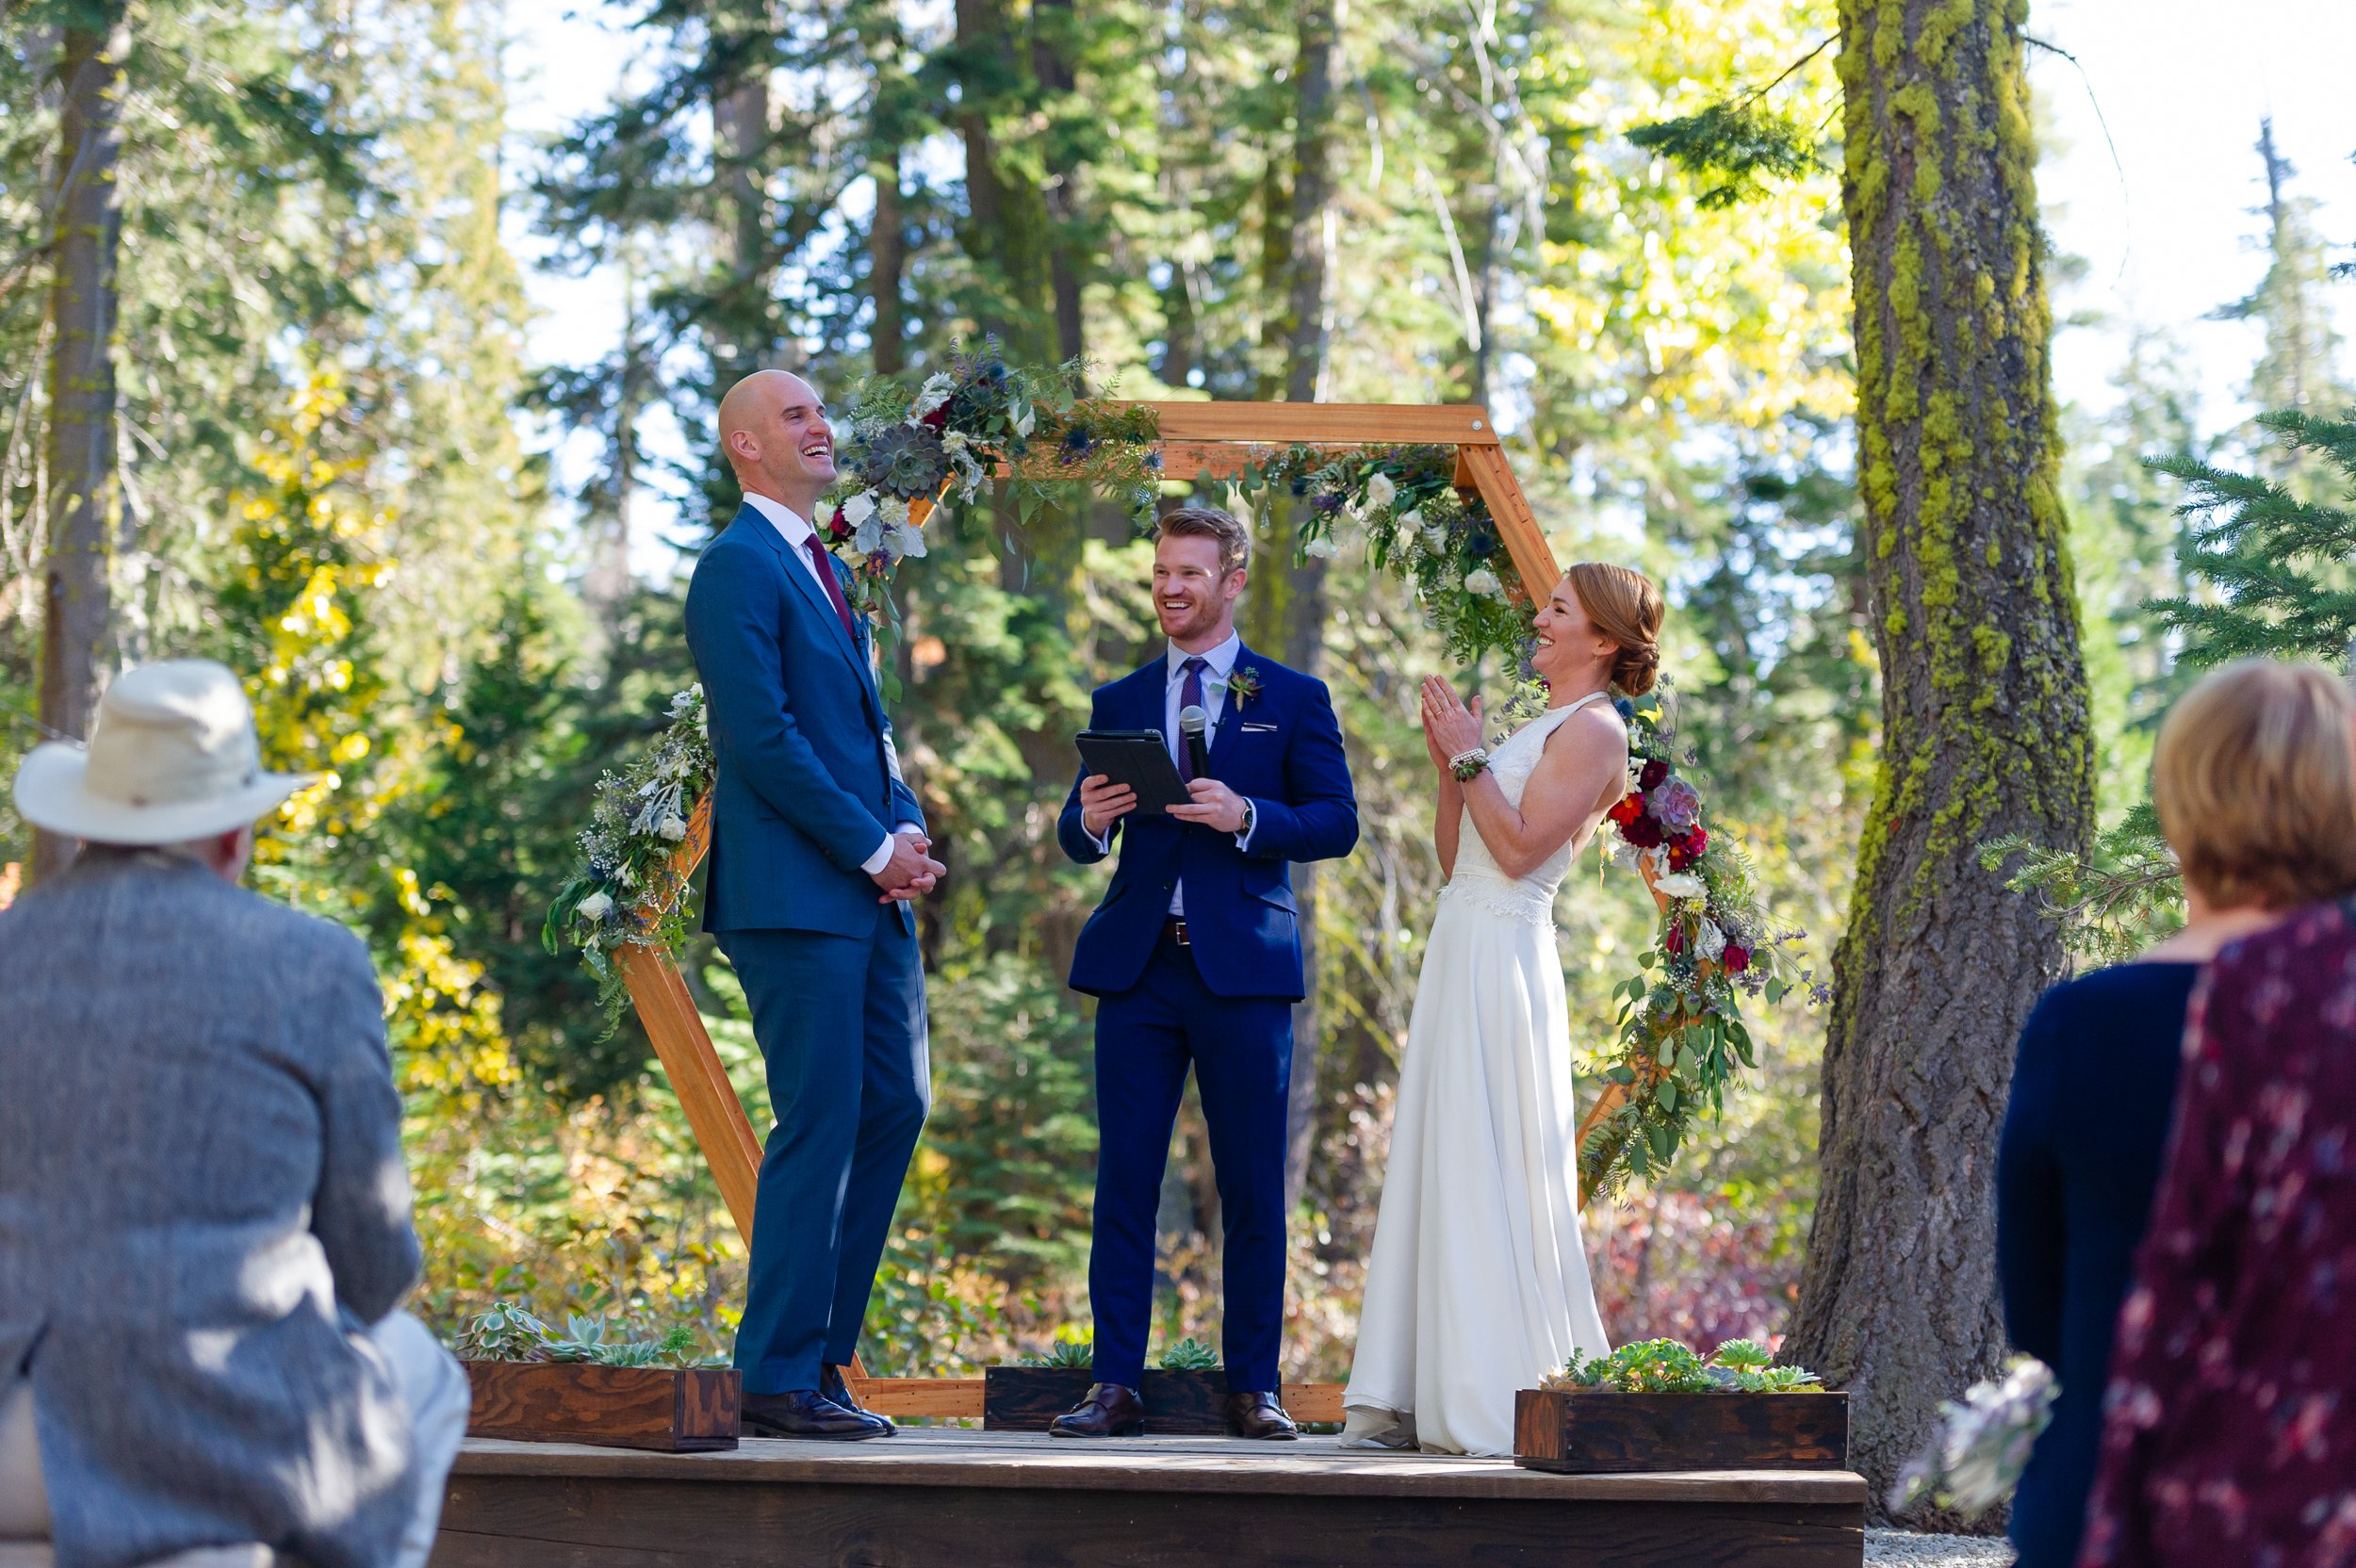 Gray Eagle wedding ceremony by chloe jackman photography